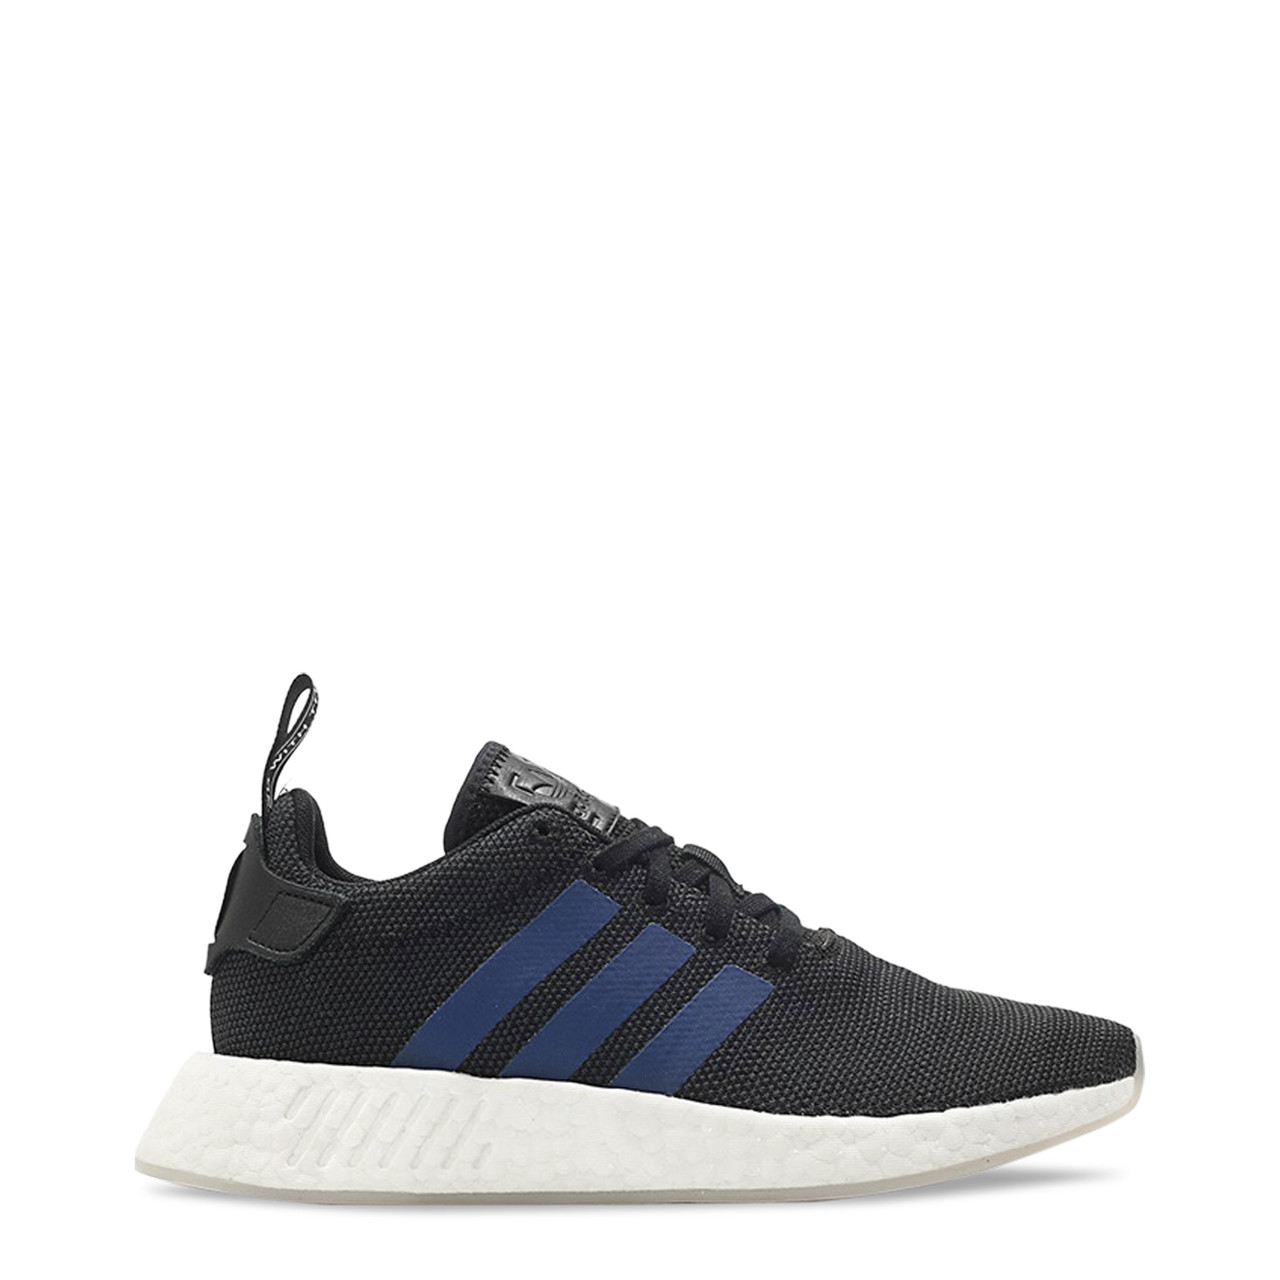 Adidas NMD-R2-W Unisex Sneakers, Blue